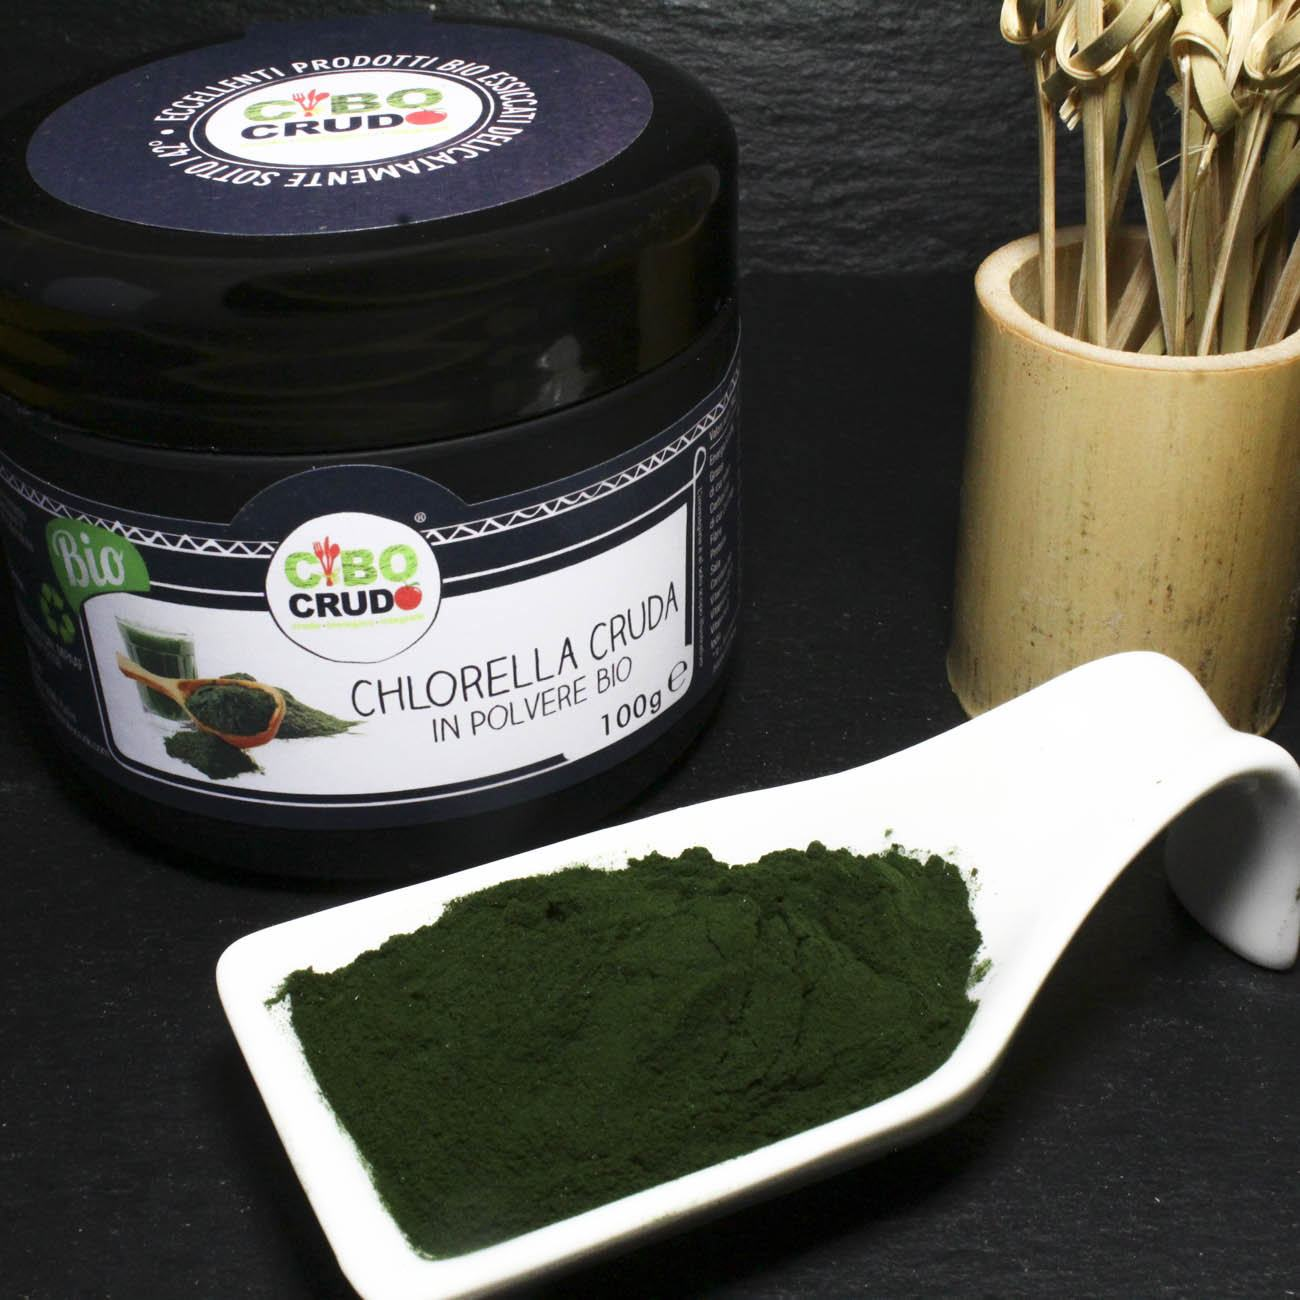 Chlorella<br/>In Polvere Cruda Bio - Chlorella Powder Raw Organic - 100g